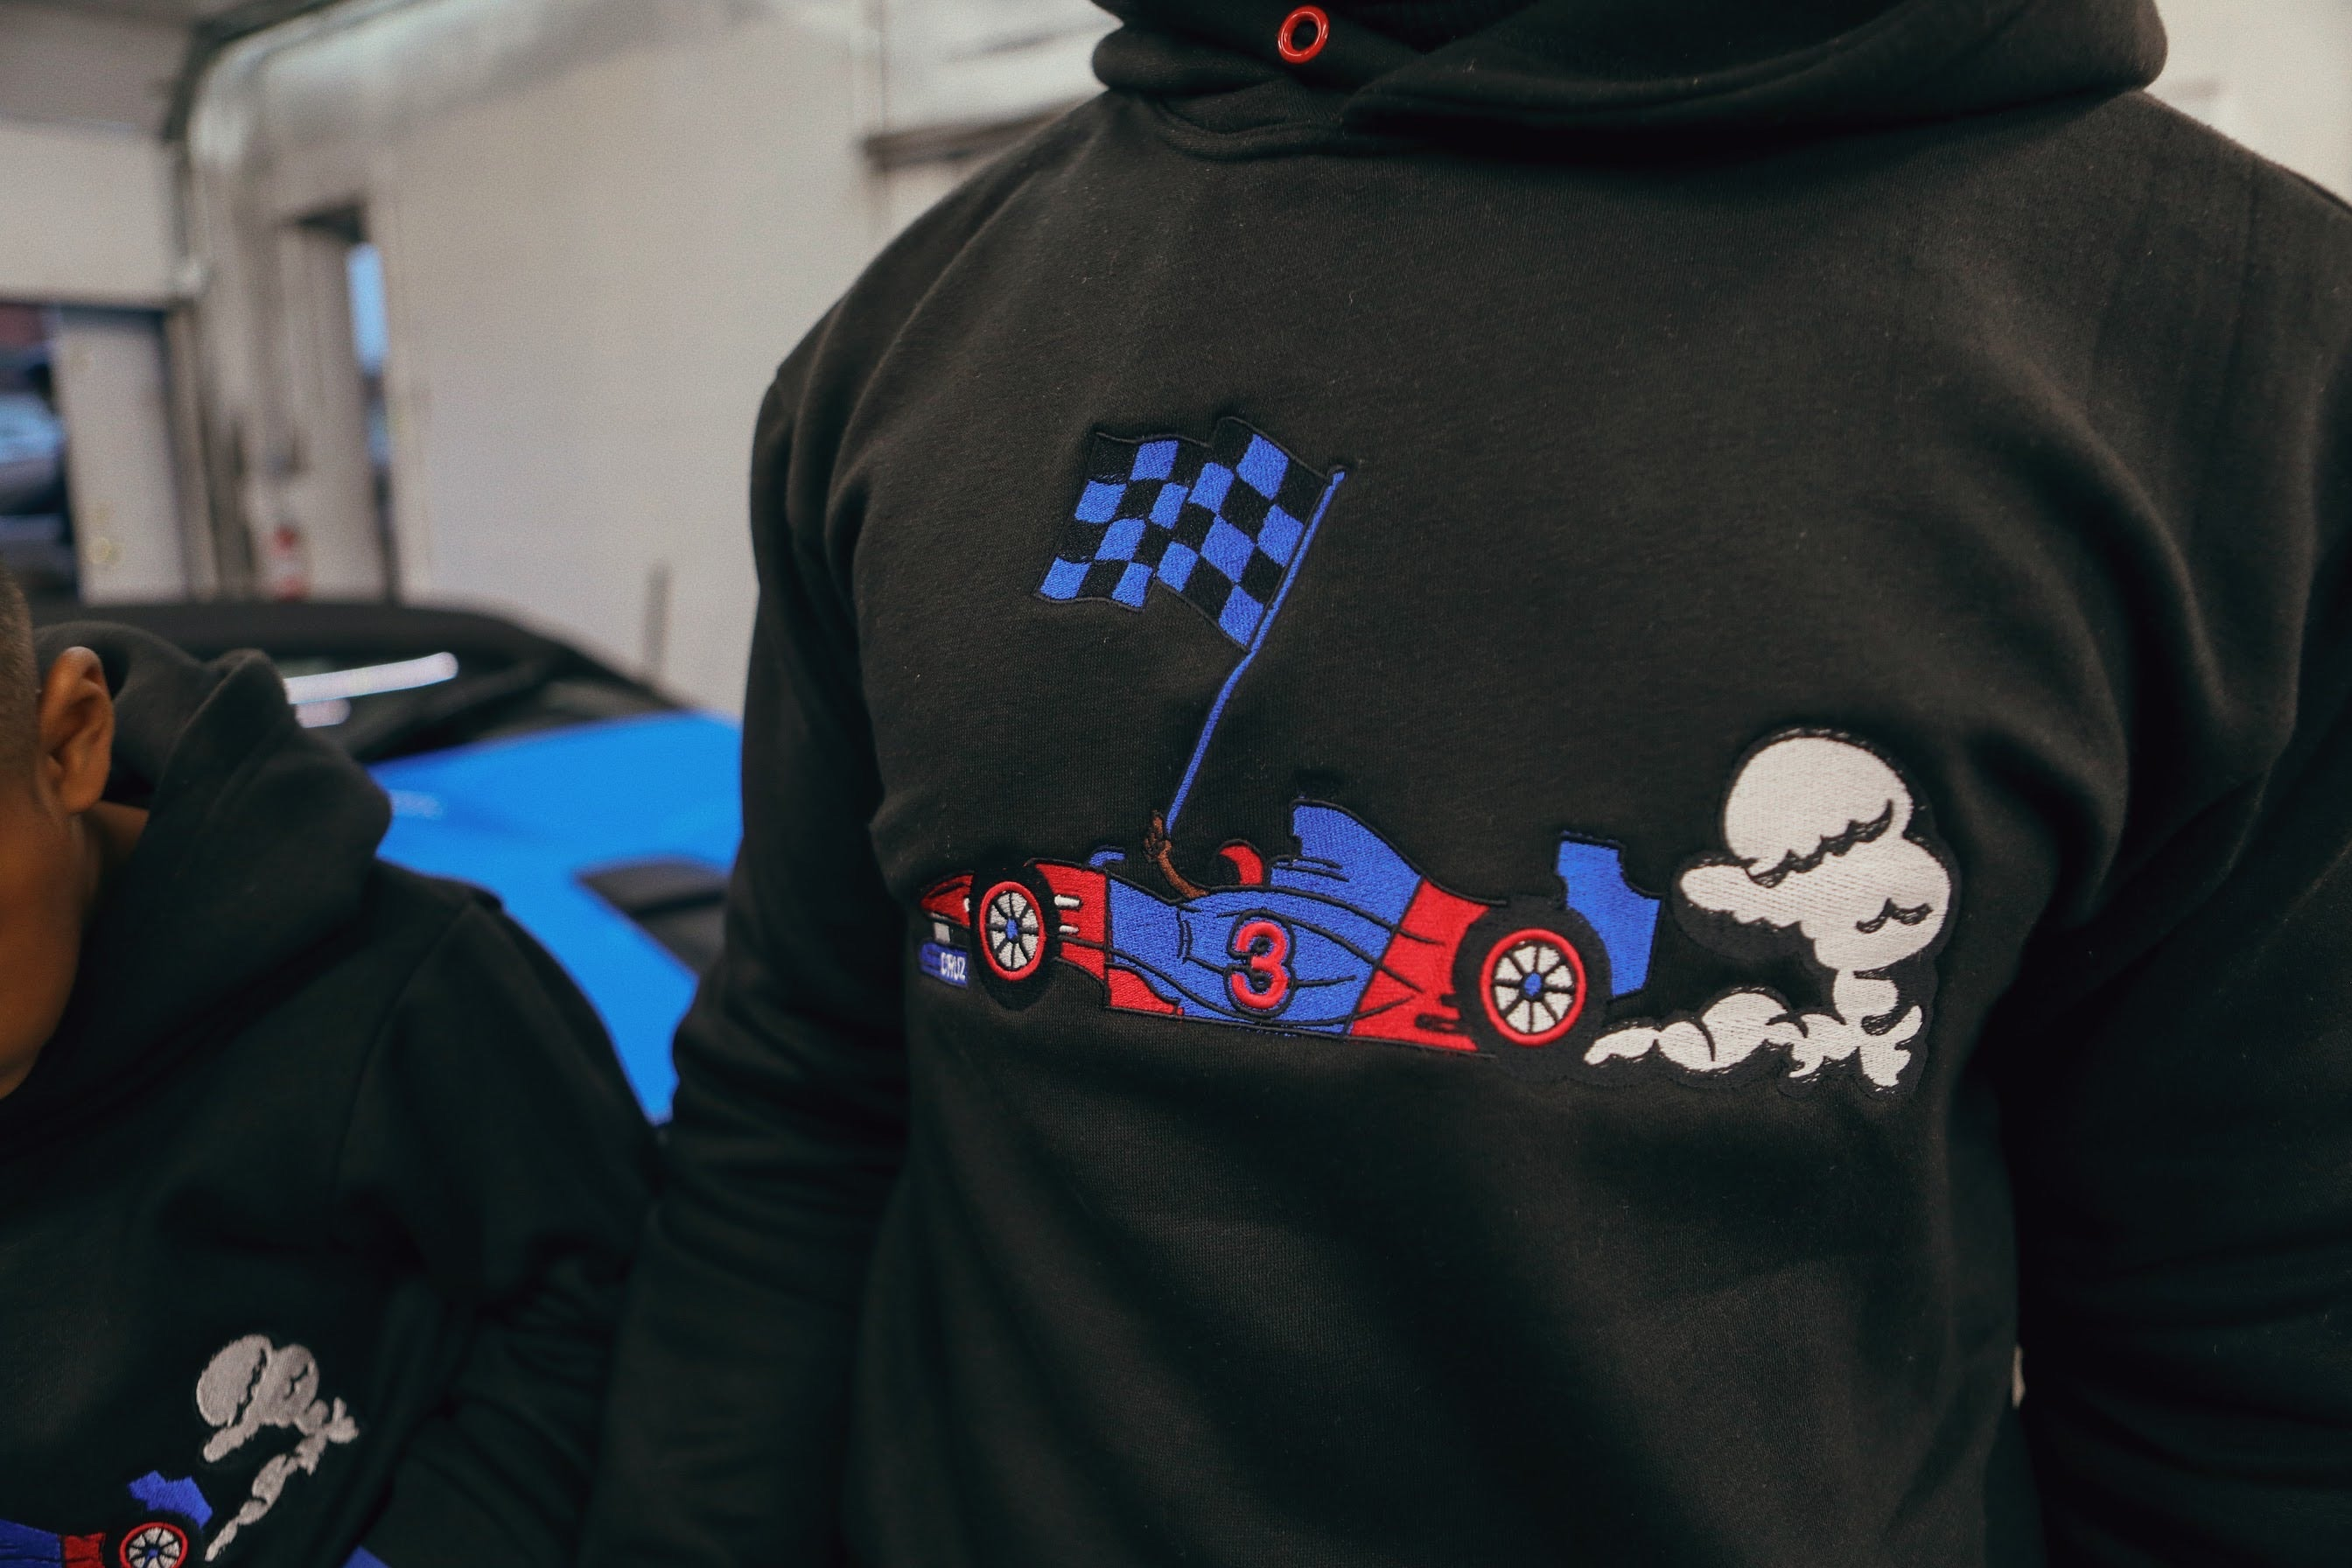 'Cruz Capsule' Fleece #3 Racer Pullover Hoody (Mens)